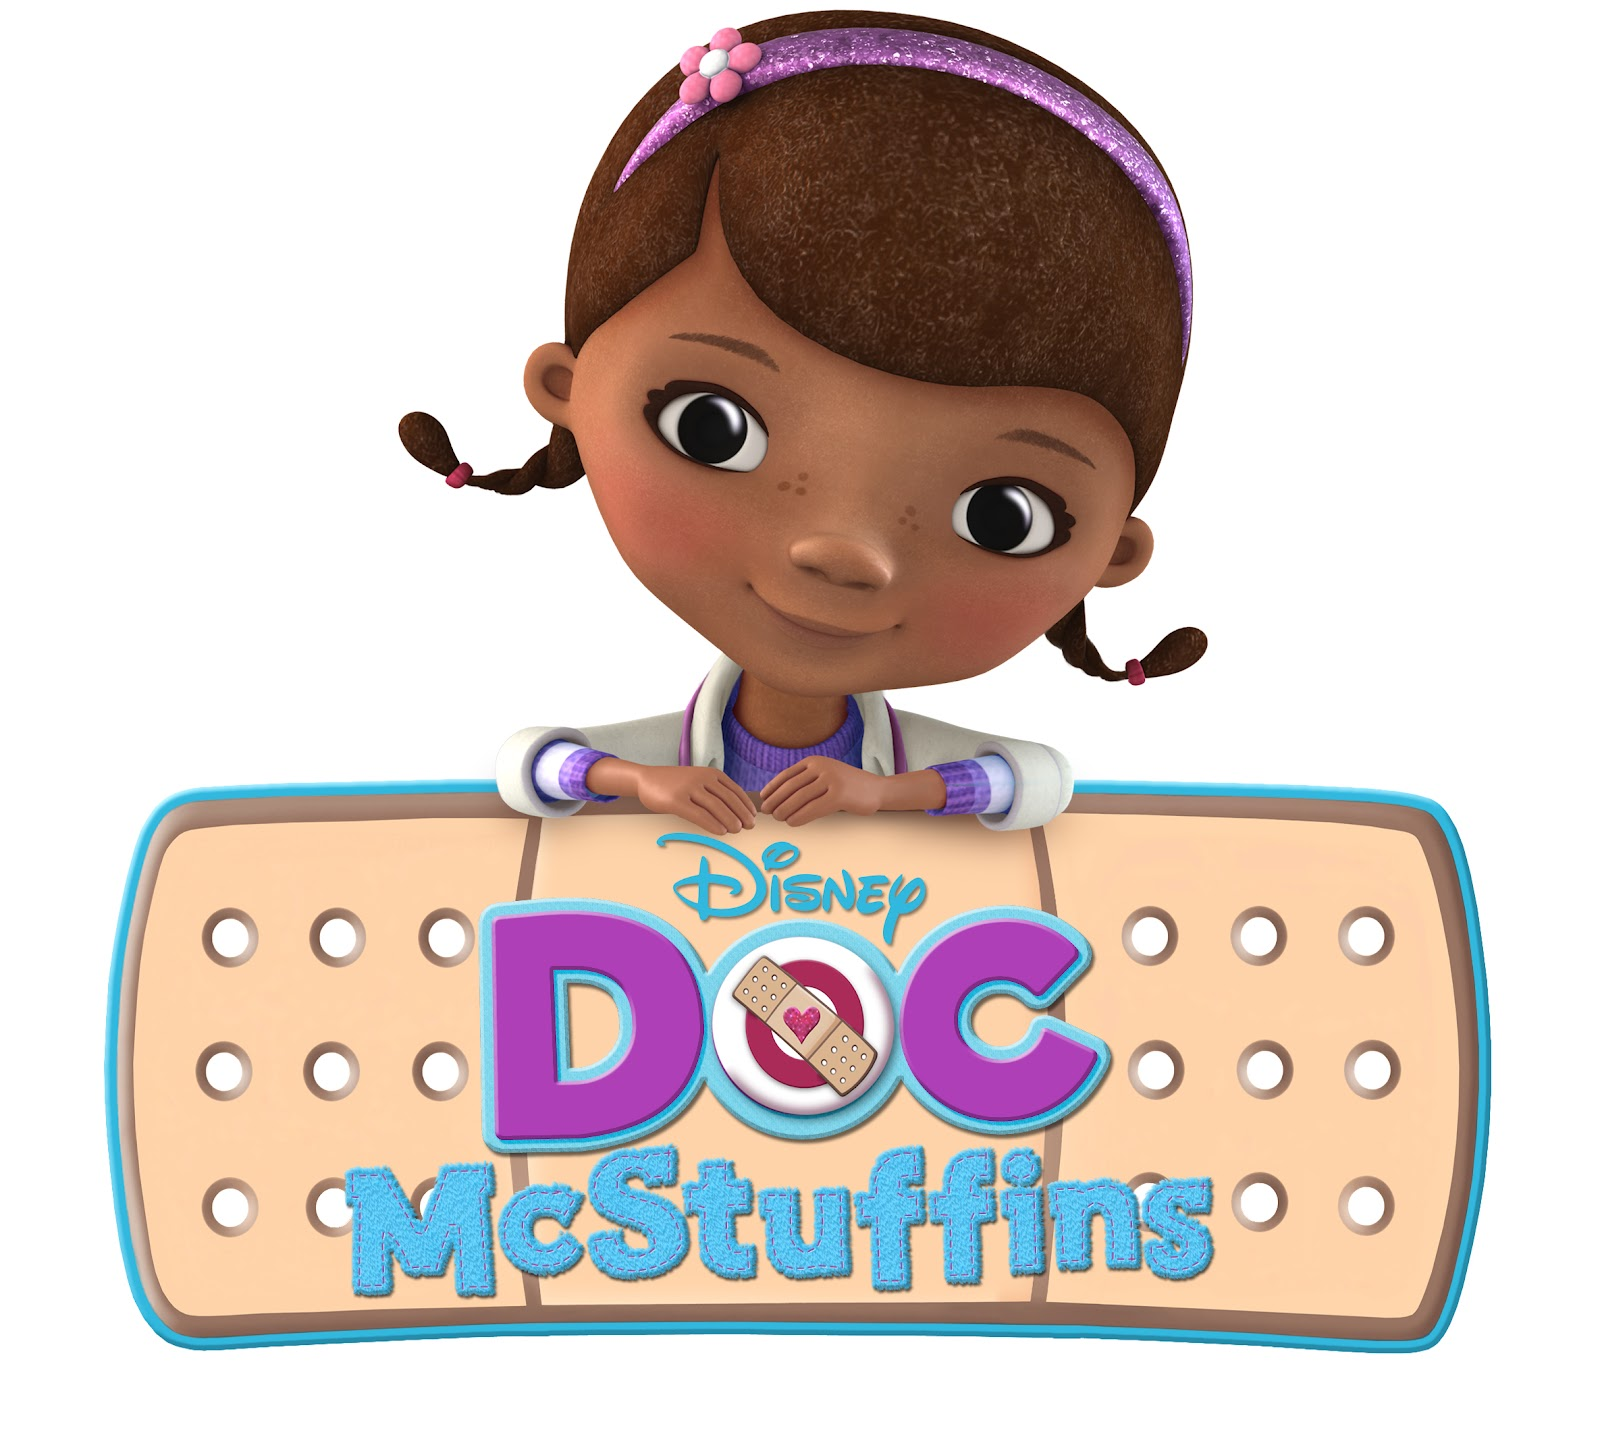 Disney doc clipart picture free download 17 Best images about Doutora Brinquedos on Pinterest | Doc ... picture free download